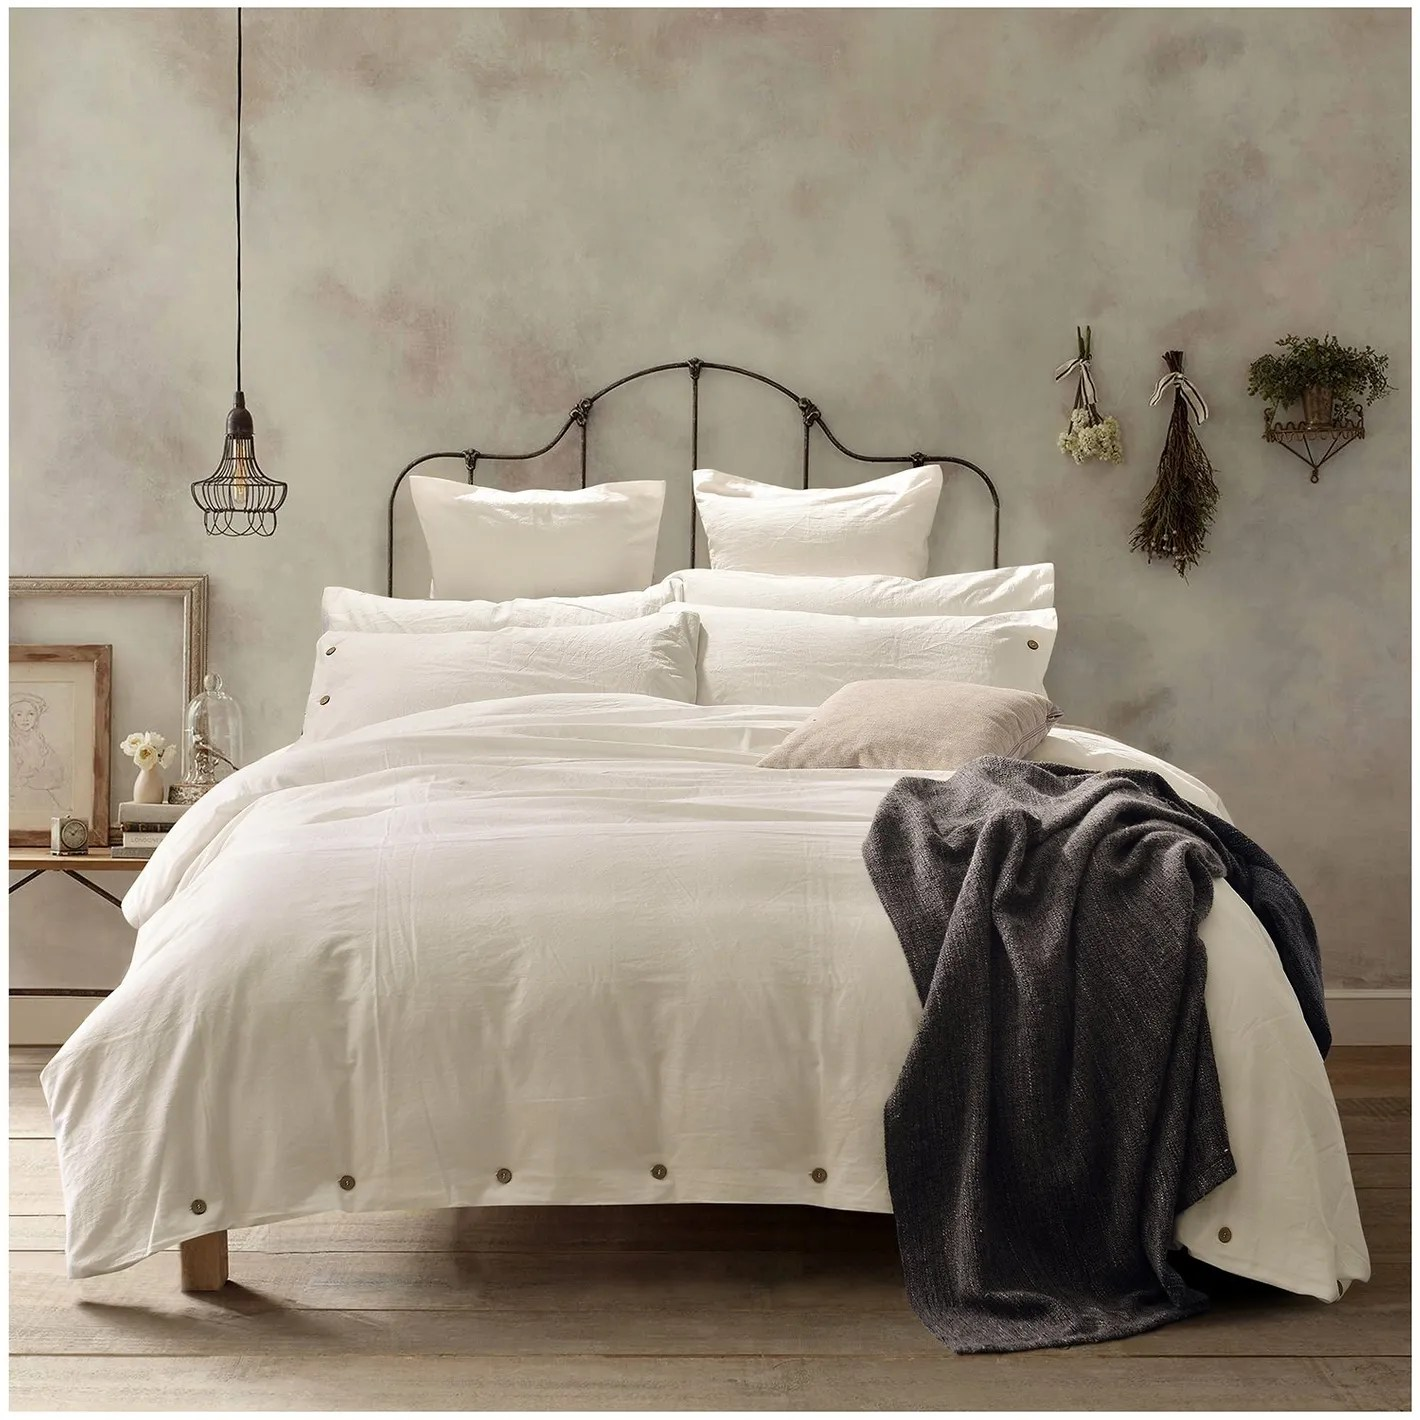 Where To Buy Nice Duvet Covers 27 Of The Best Duvet Covers According To Interior Designers